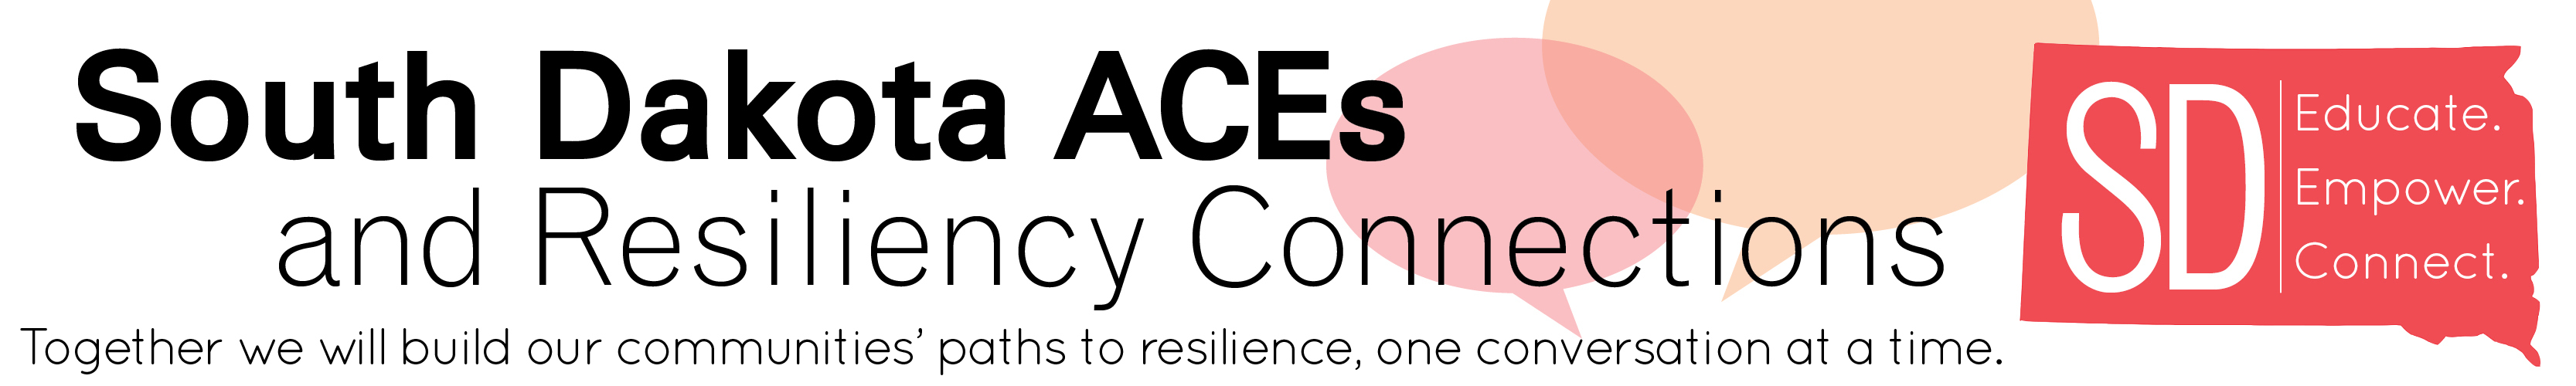 South Dakota ACEs and Resiliency Connections